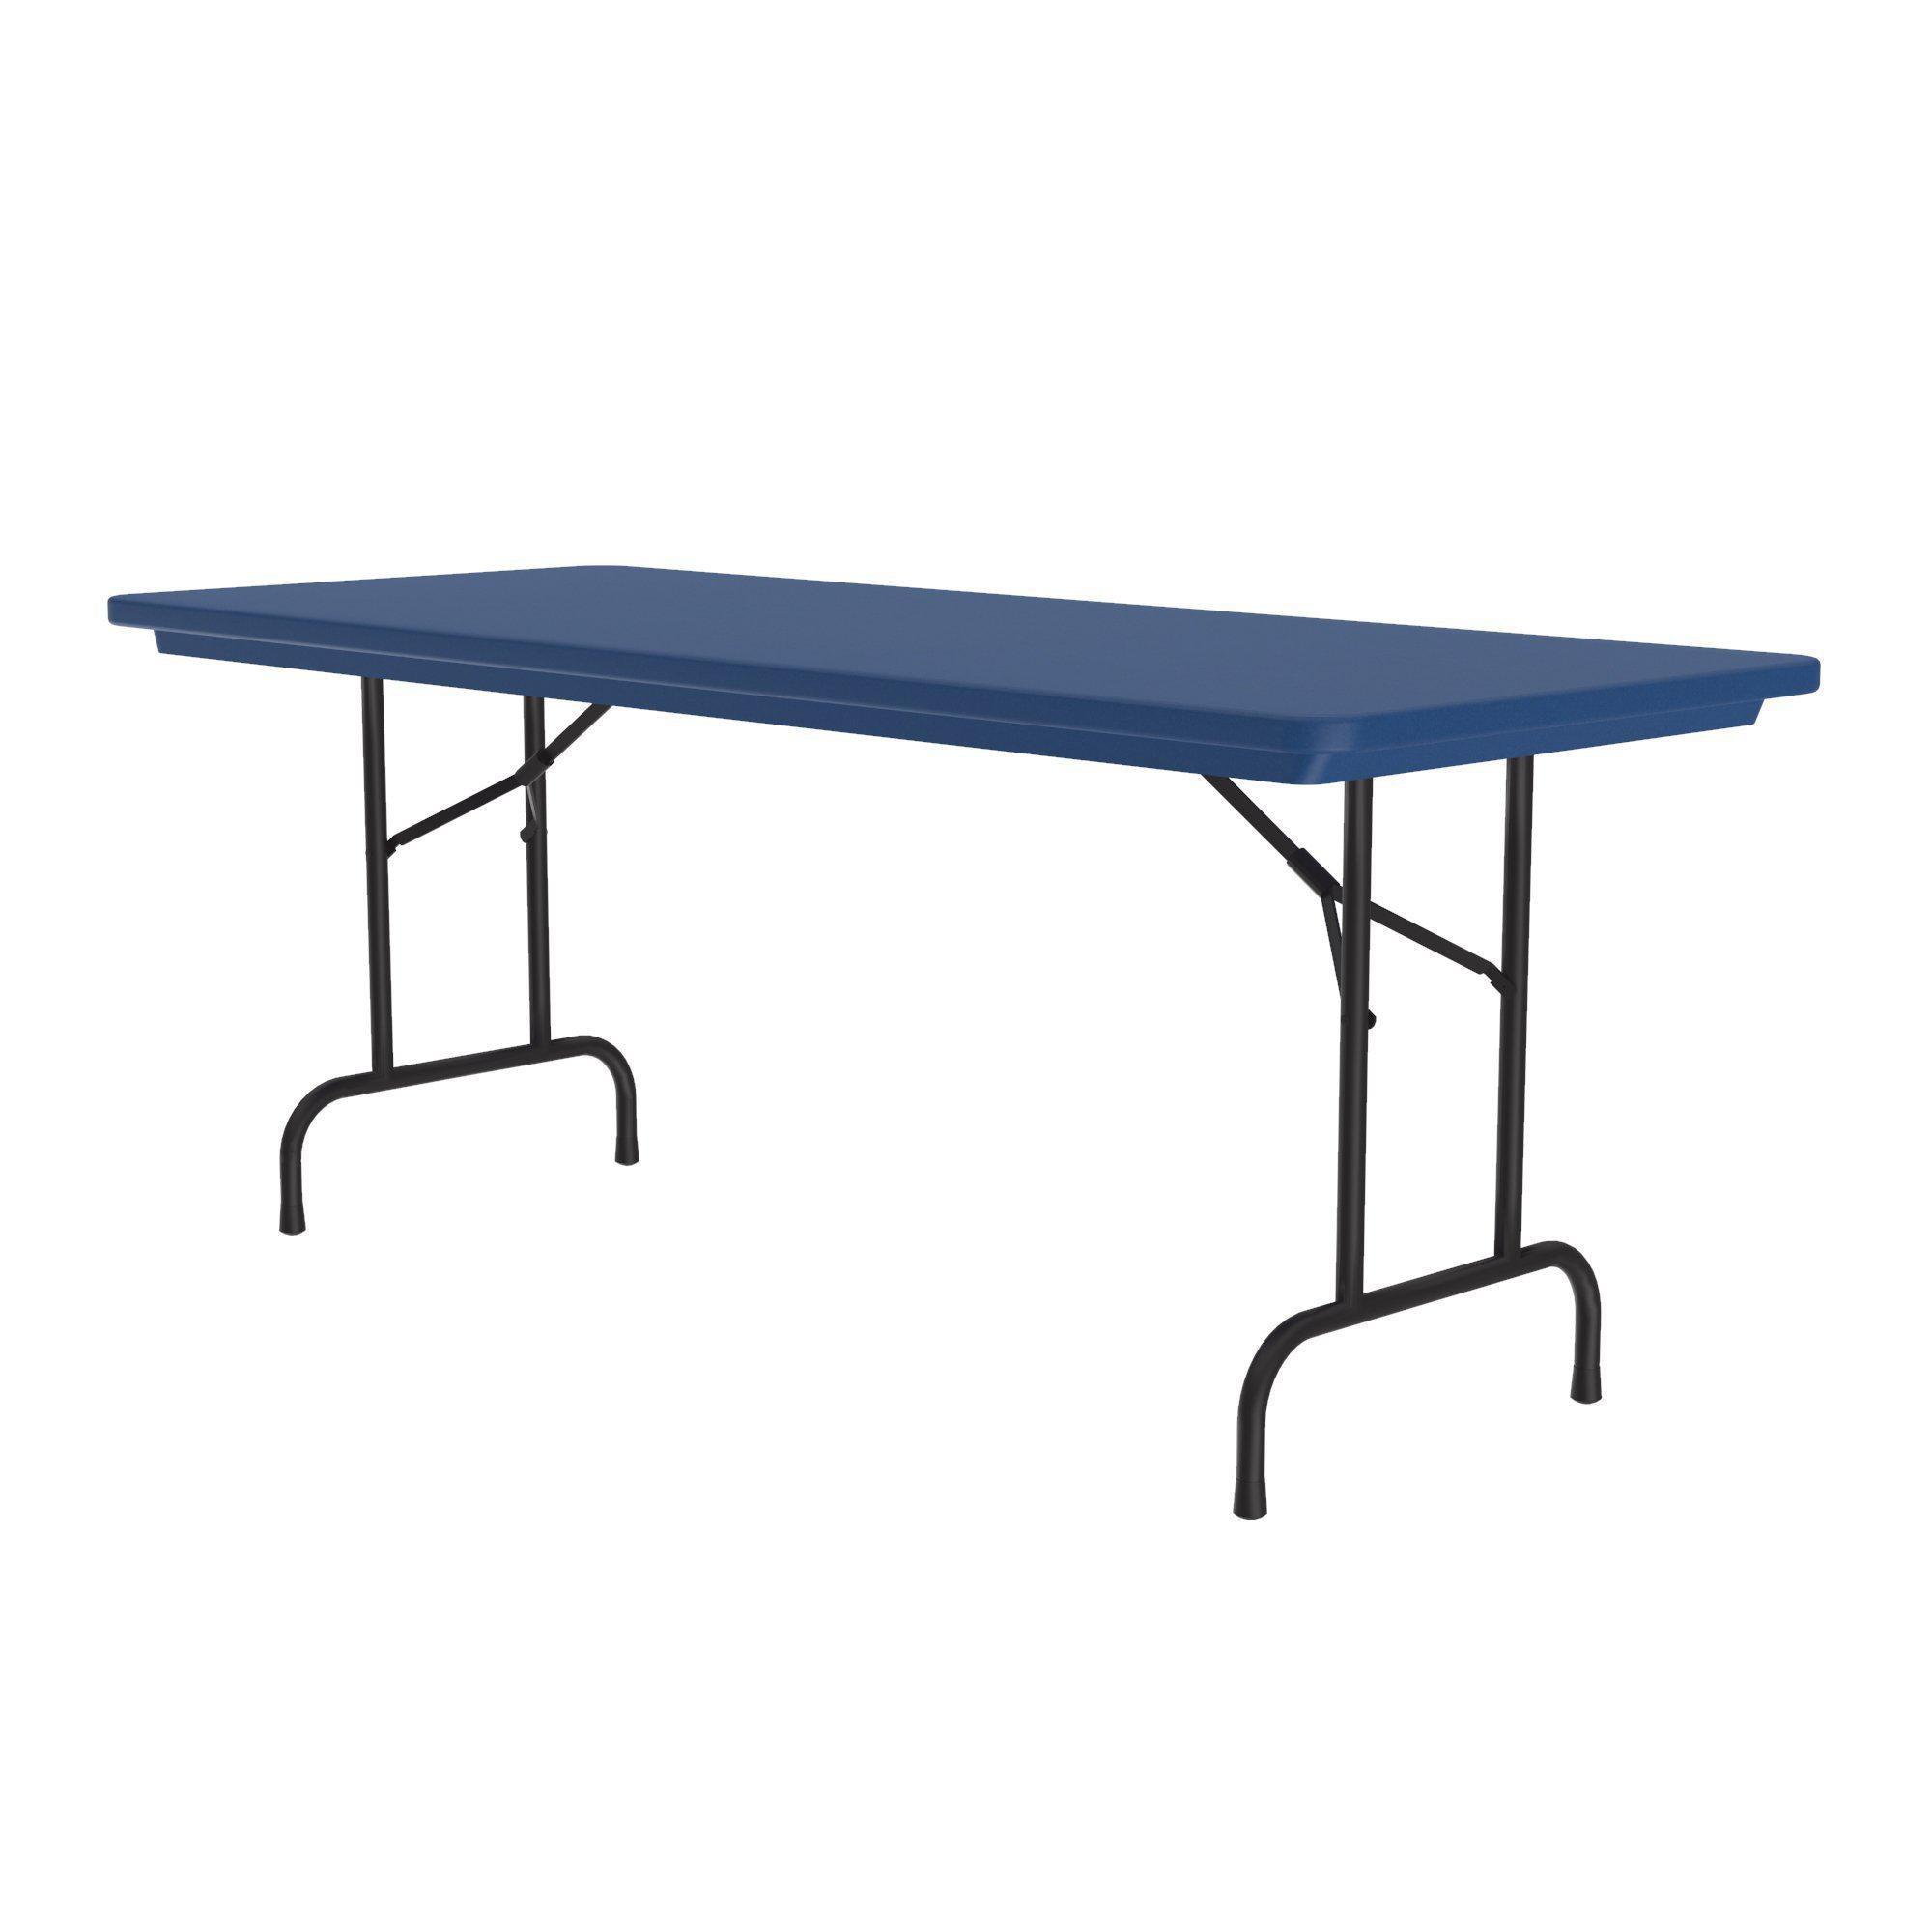 "Heavy Duty Commercial Use Blow Molded Folding Table, Primary Colors, Standard 29"" Fixed Height, 30 x 72"